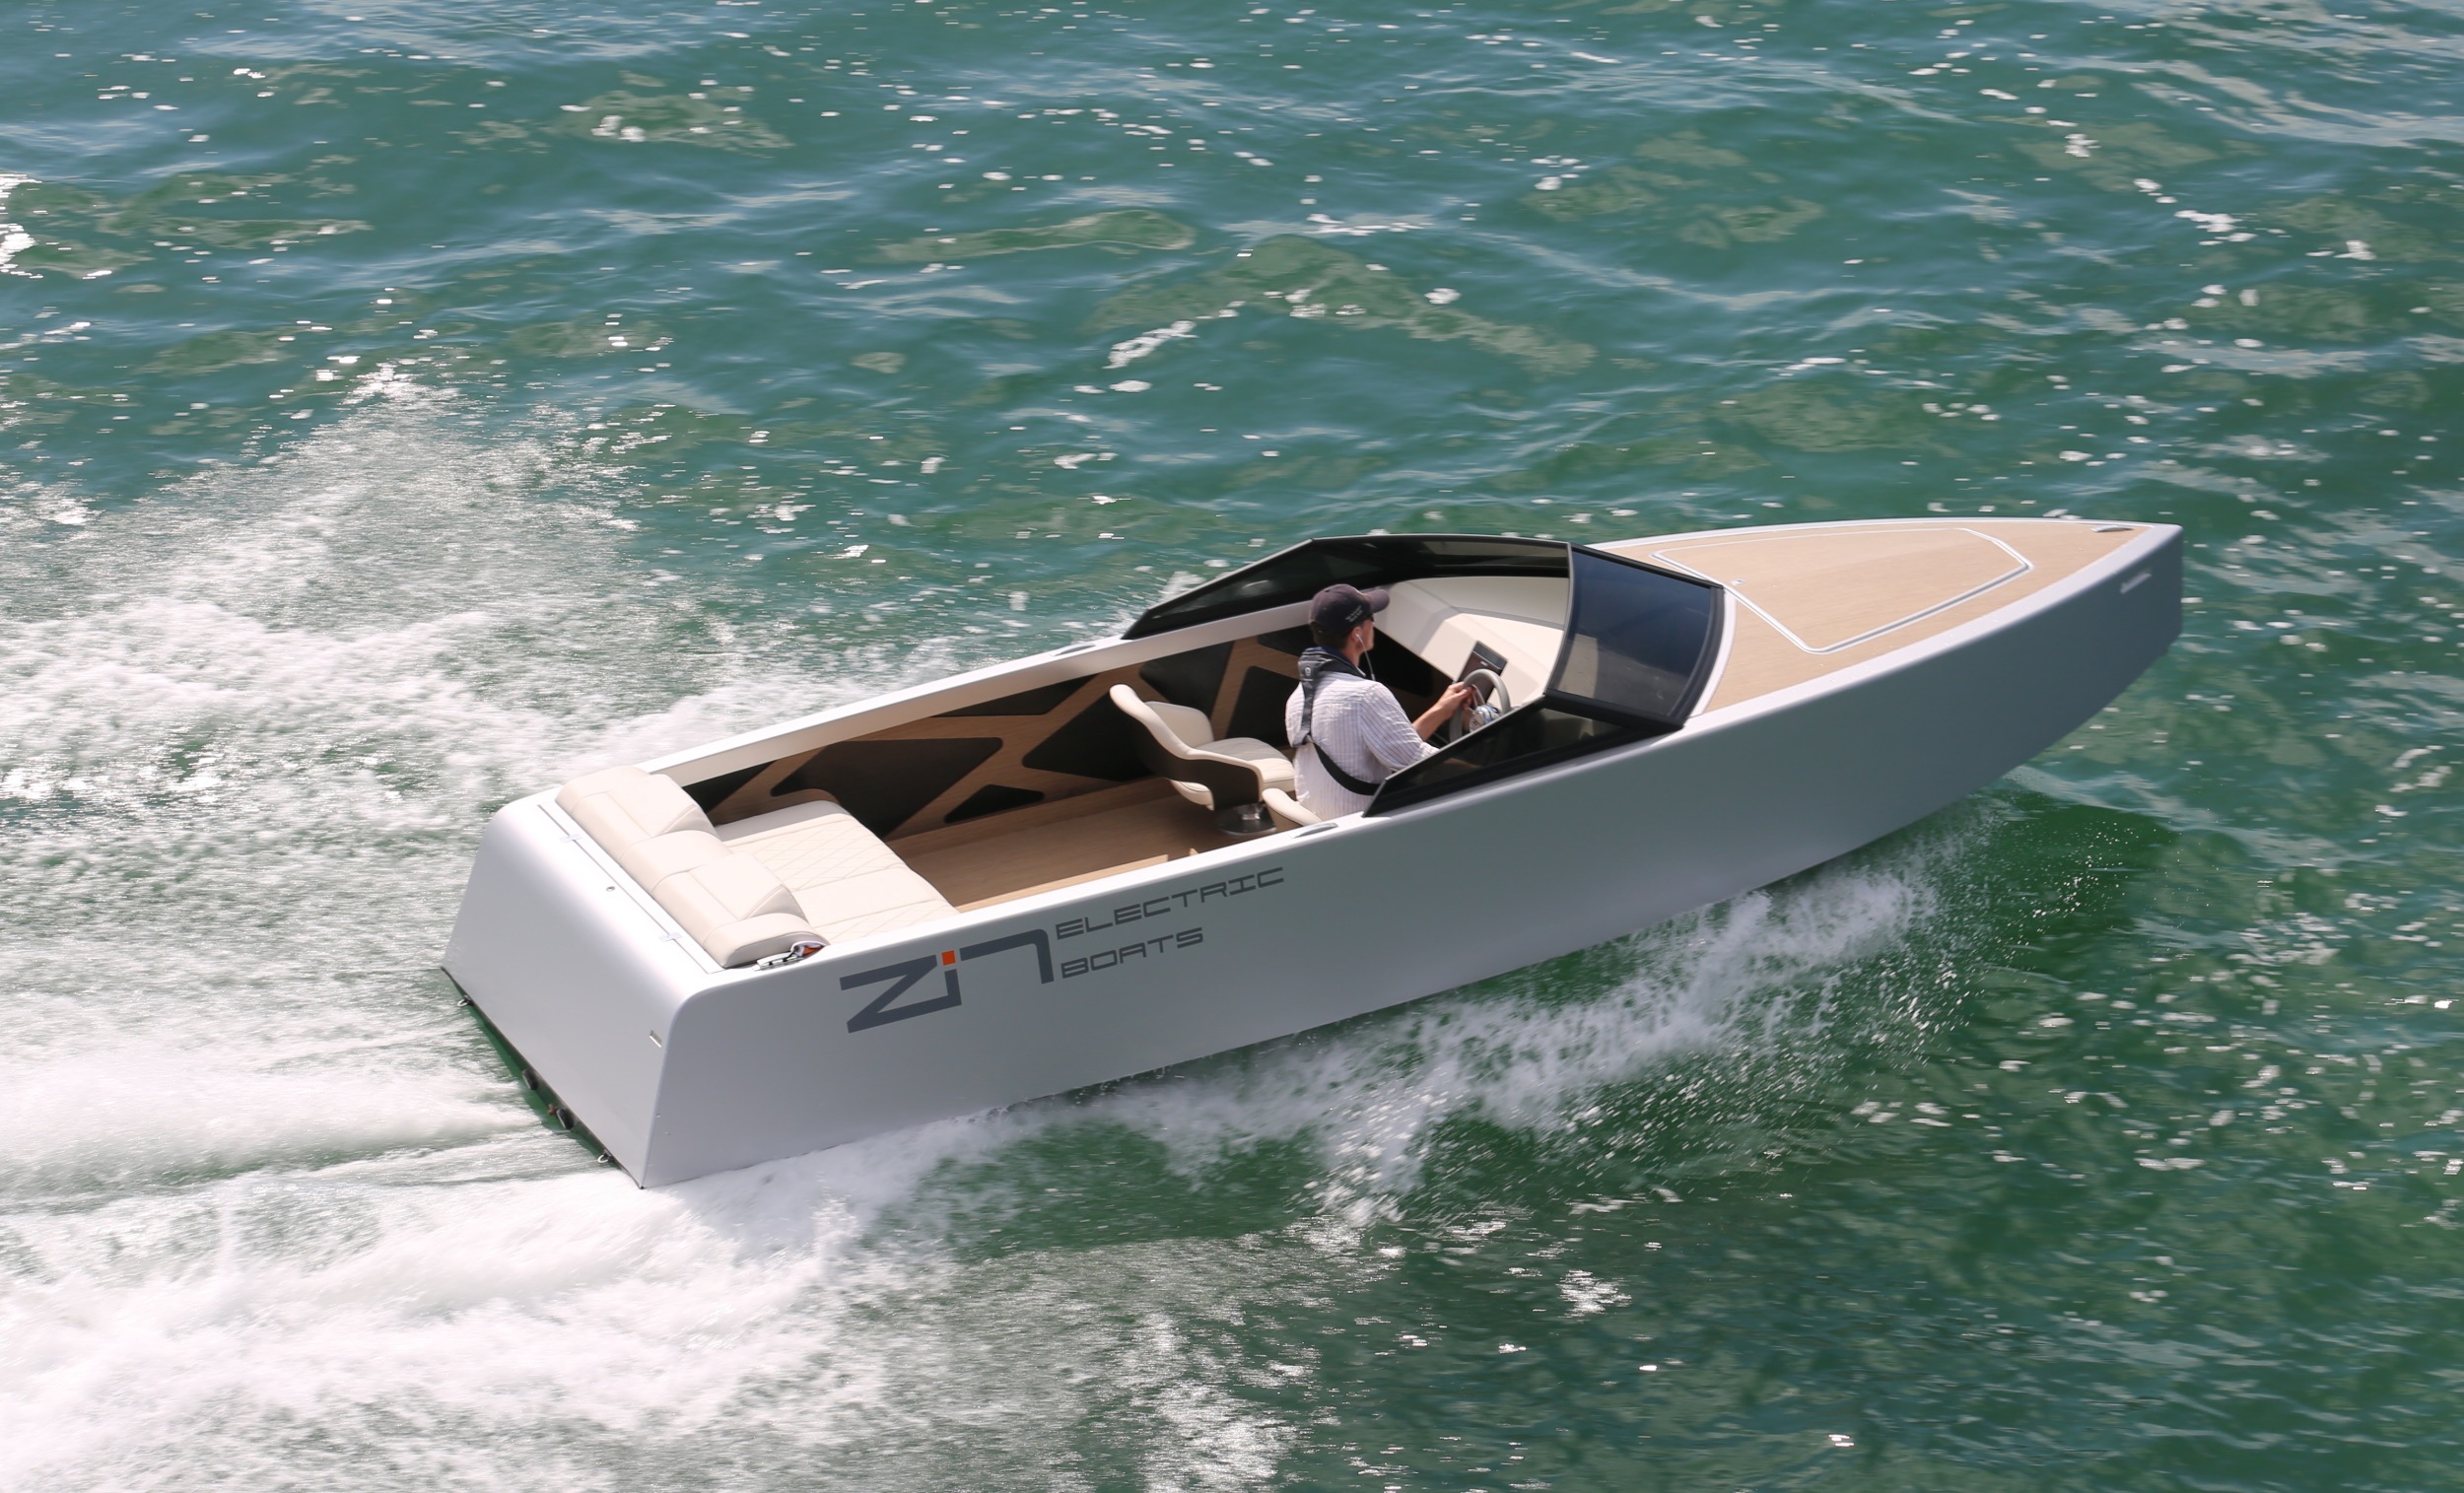 Ban cabin fever and stay cozy this winter with easy projects for both kids and adults. Zin Boats Reinvents The Electric Speedboat In A Bid To Become The Tesla Of The Sea Techcrunch